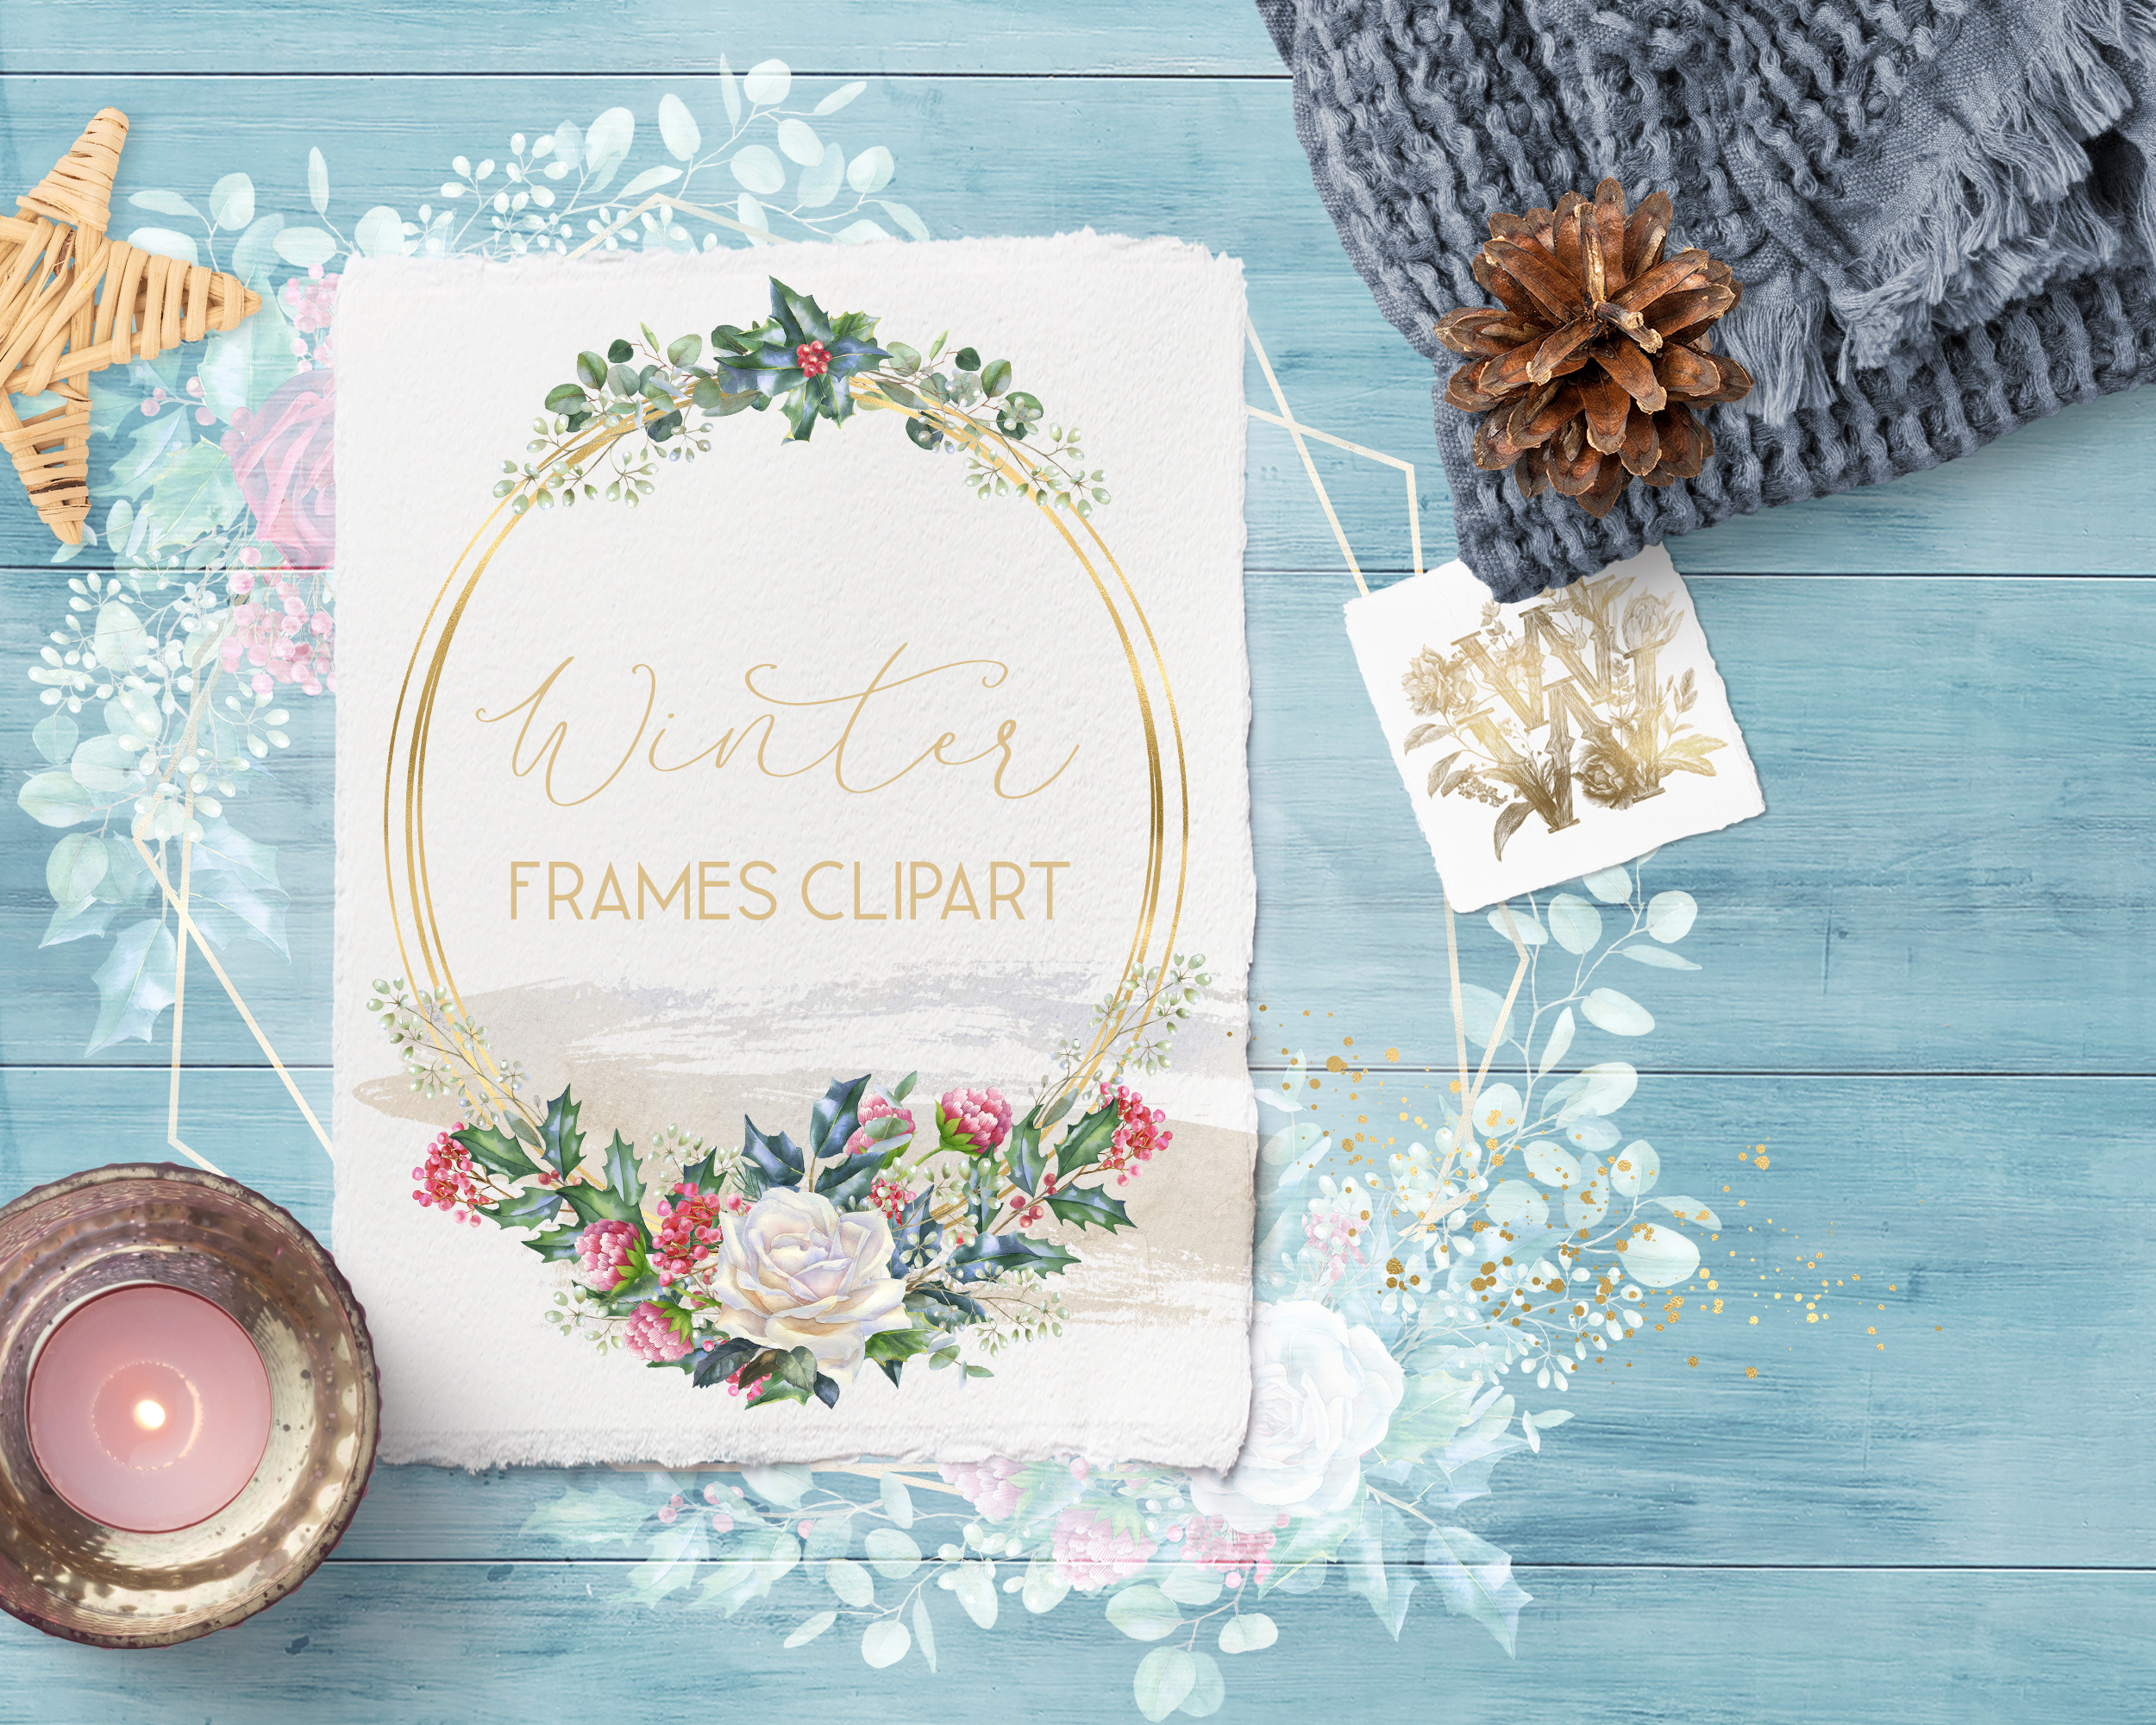 Winter frames clipart, watercolor Christmas borders png example image 5